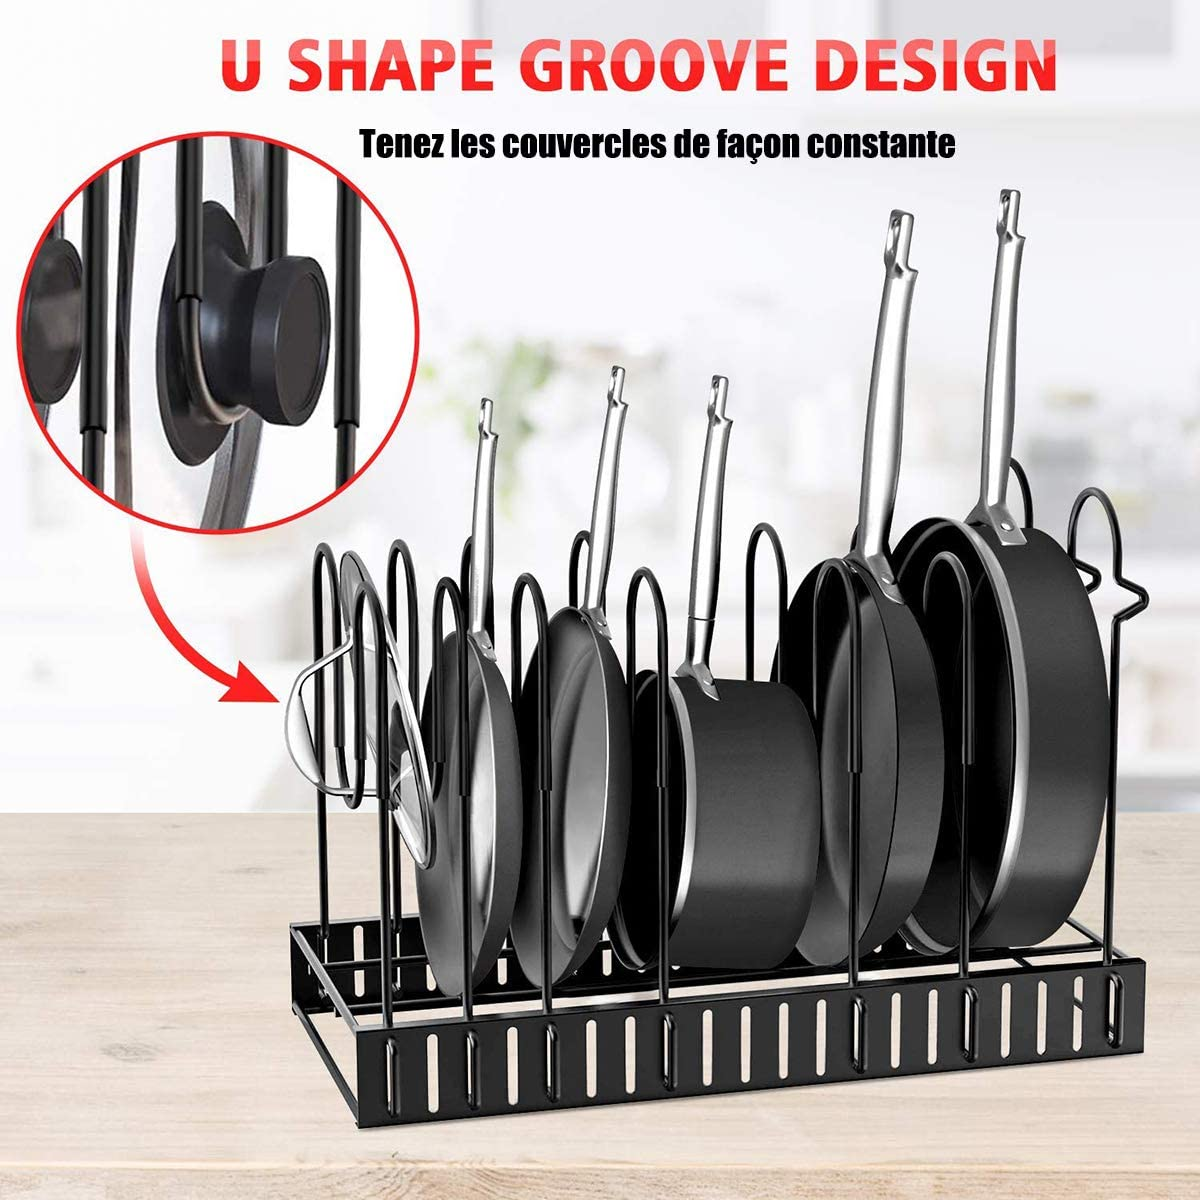 Multifunctional Pans Organizer Rack Detachable Pans Holder 3 in 1 Storage with 8 Compartments Shelf Cookware Holders Cabinet Pantry